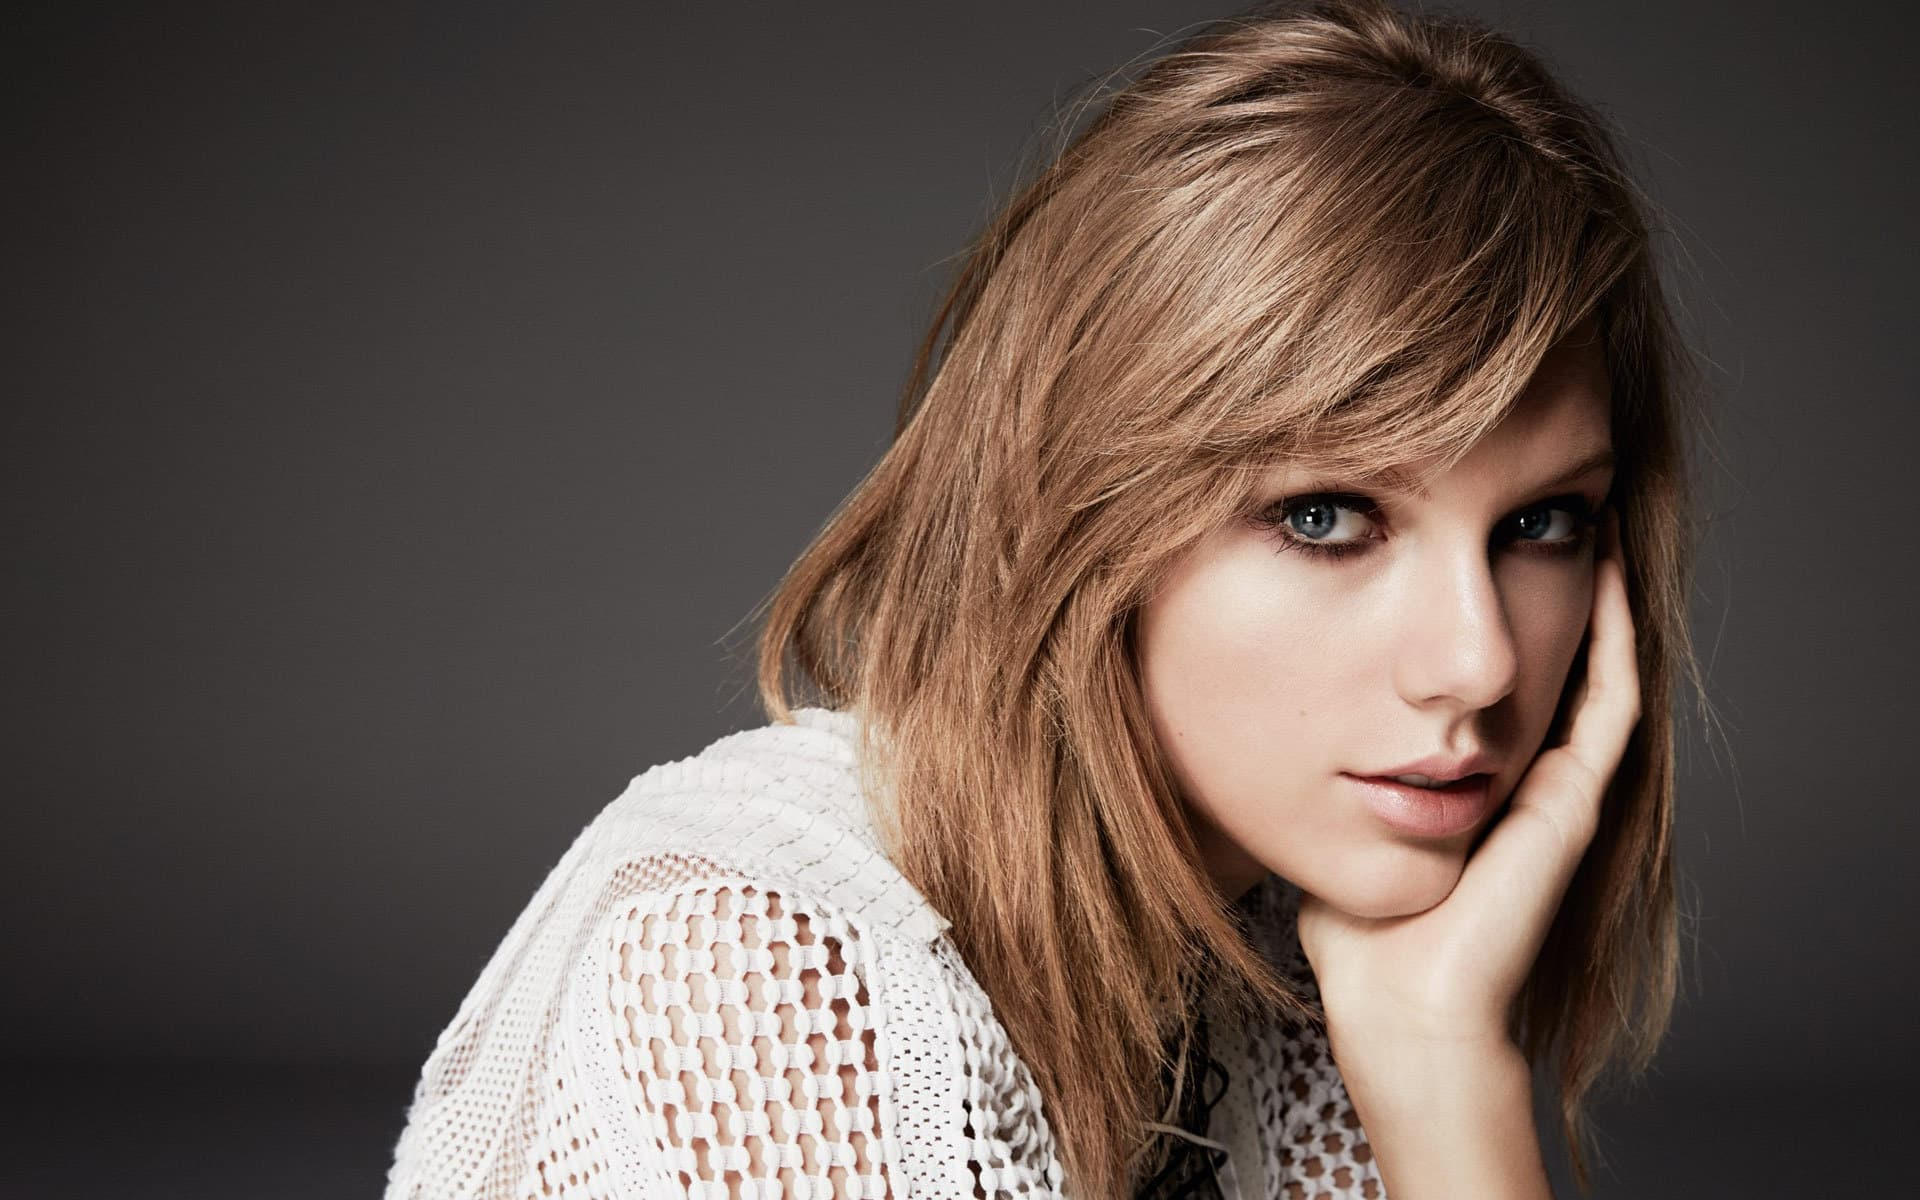 Taylor Swift Wallpapers High Quality Pictures Images For